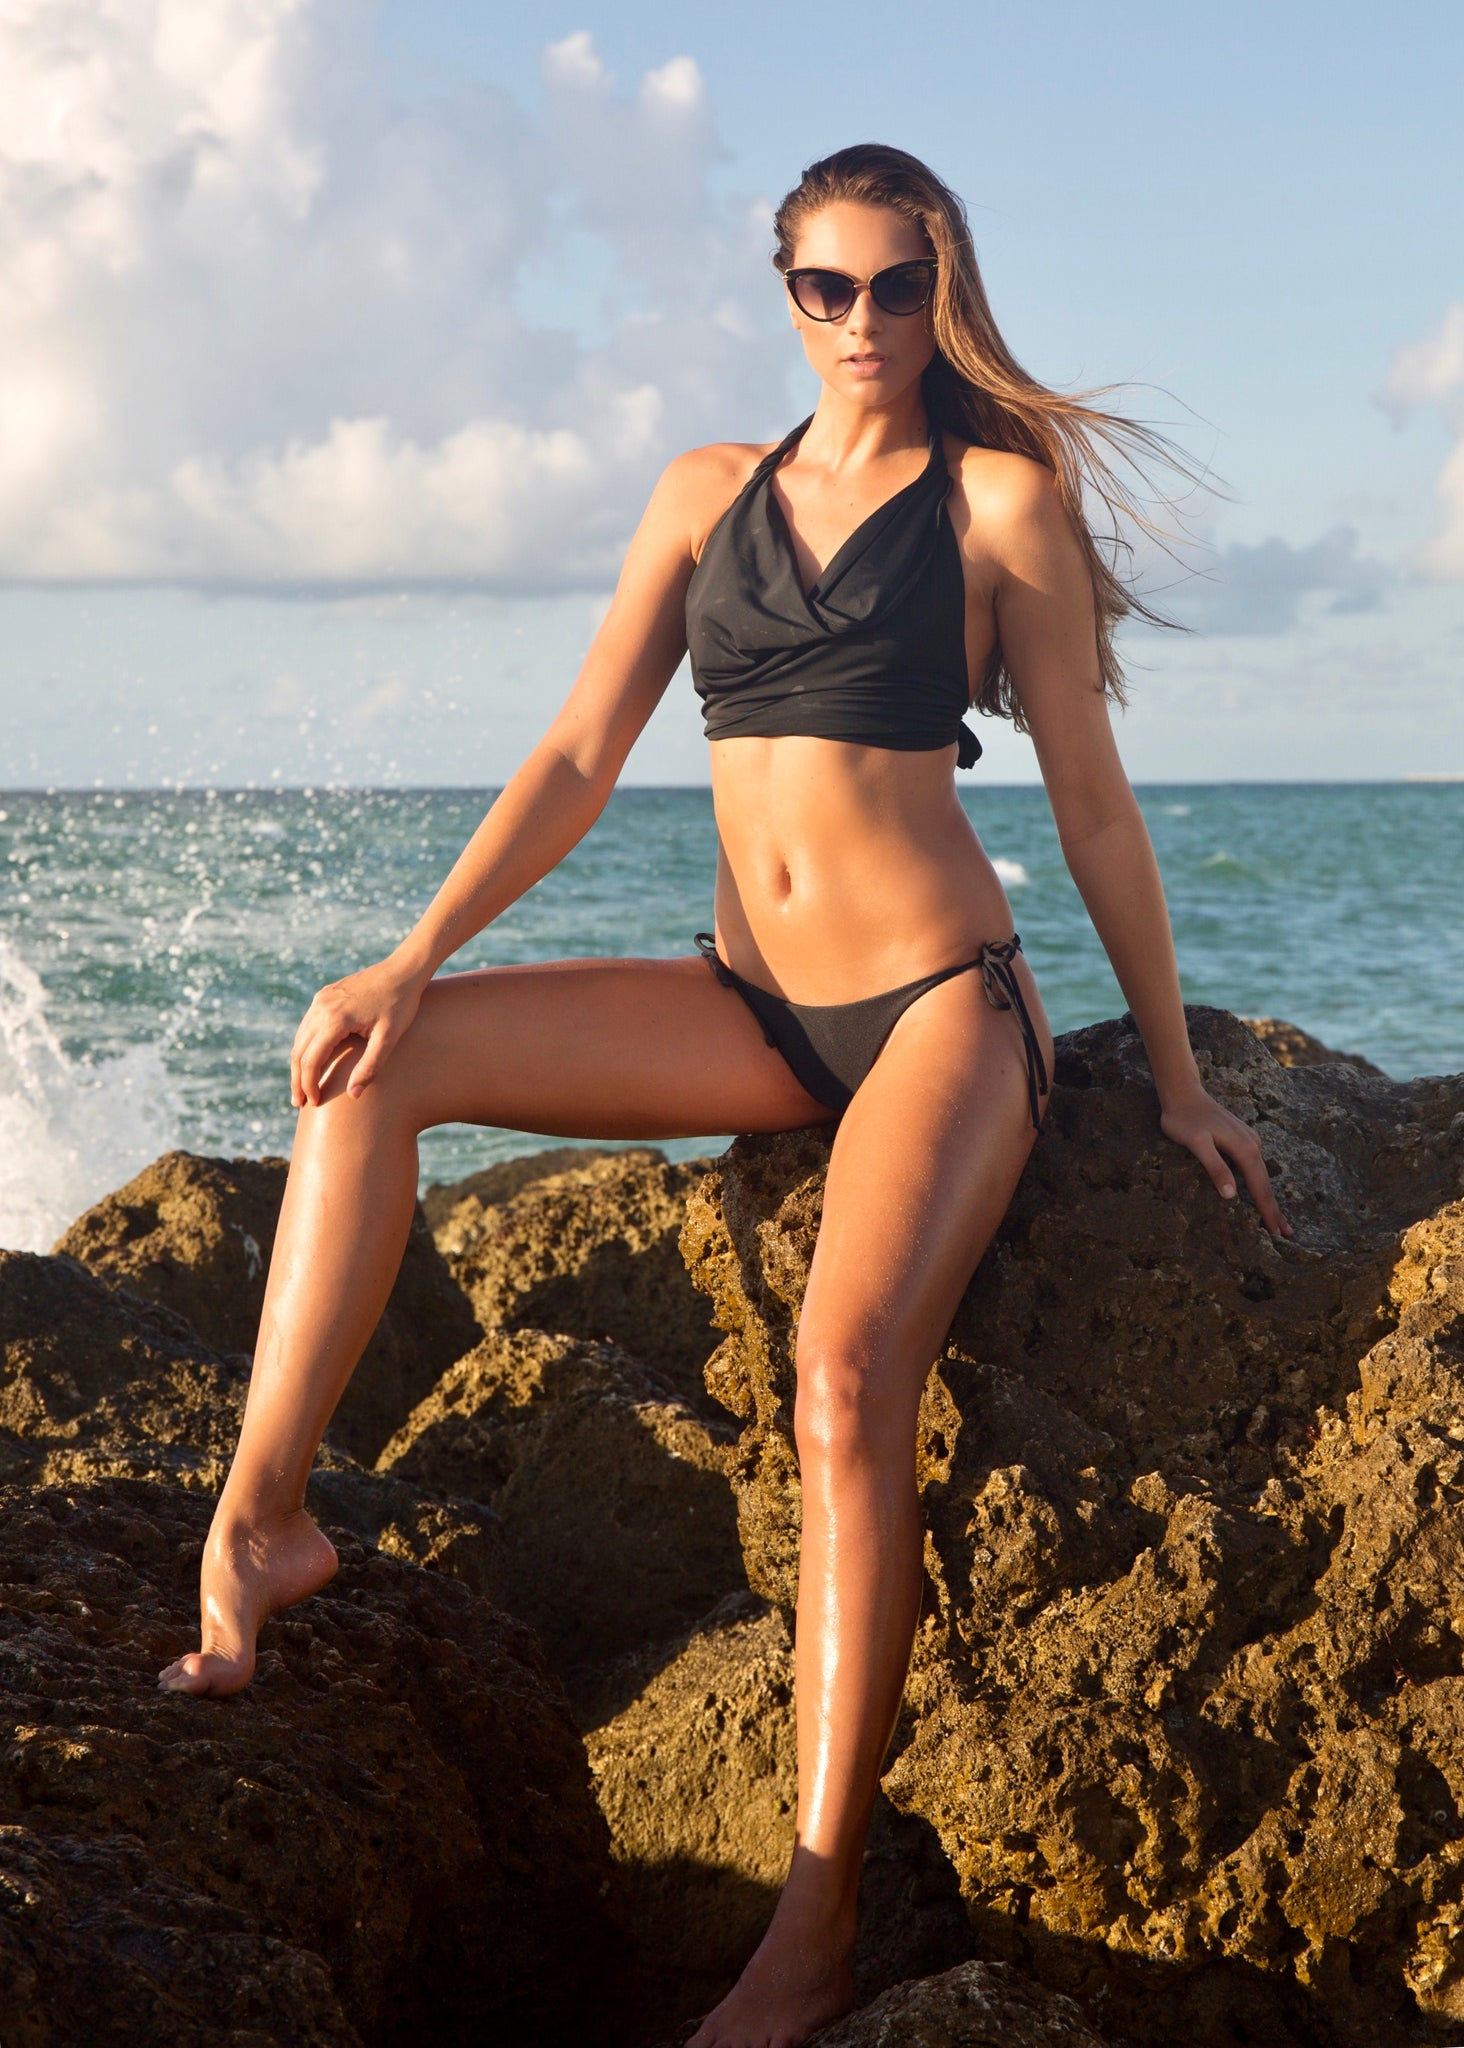 The Victoria - Gabriela Pires Beachwear